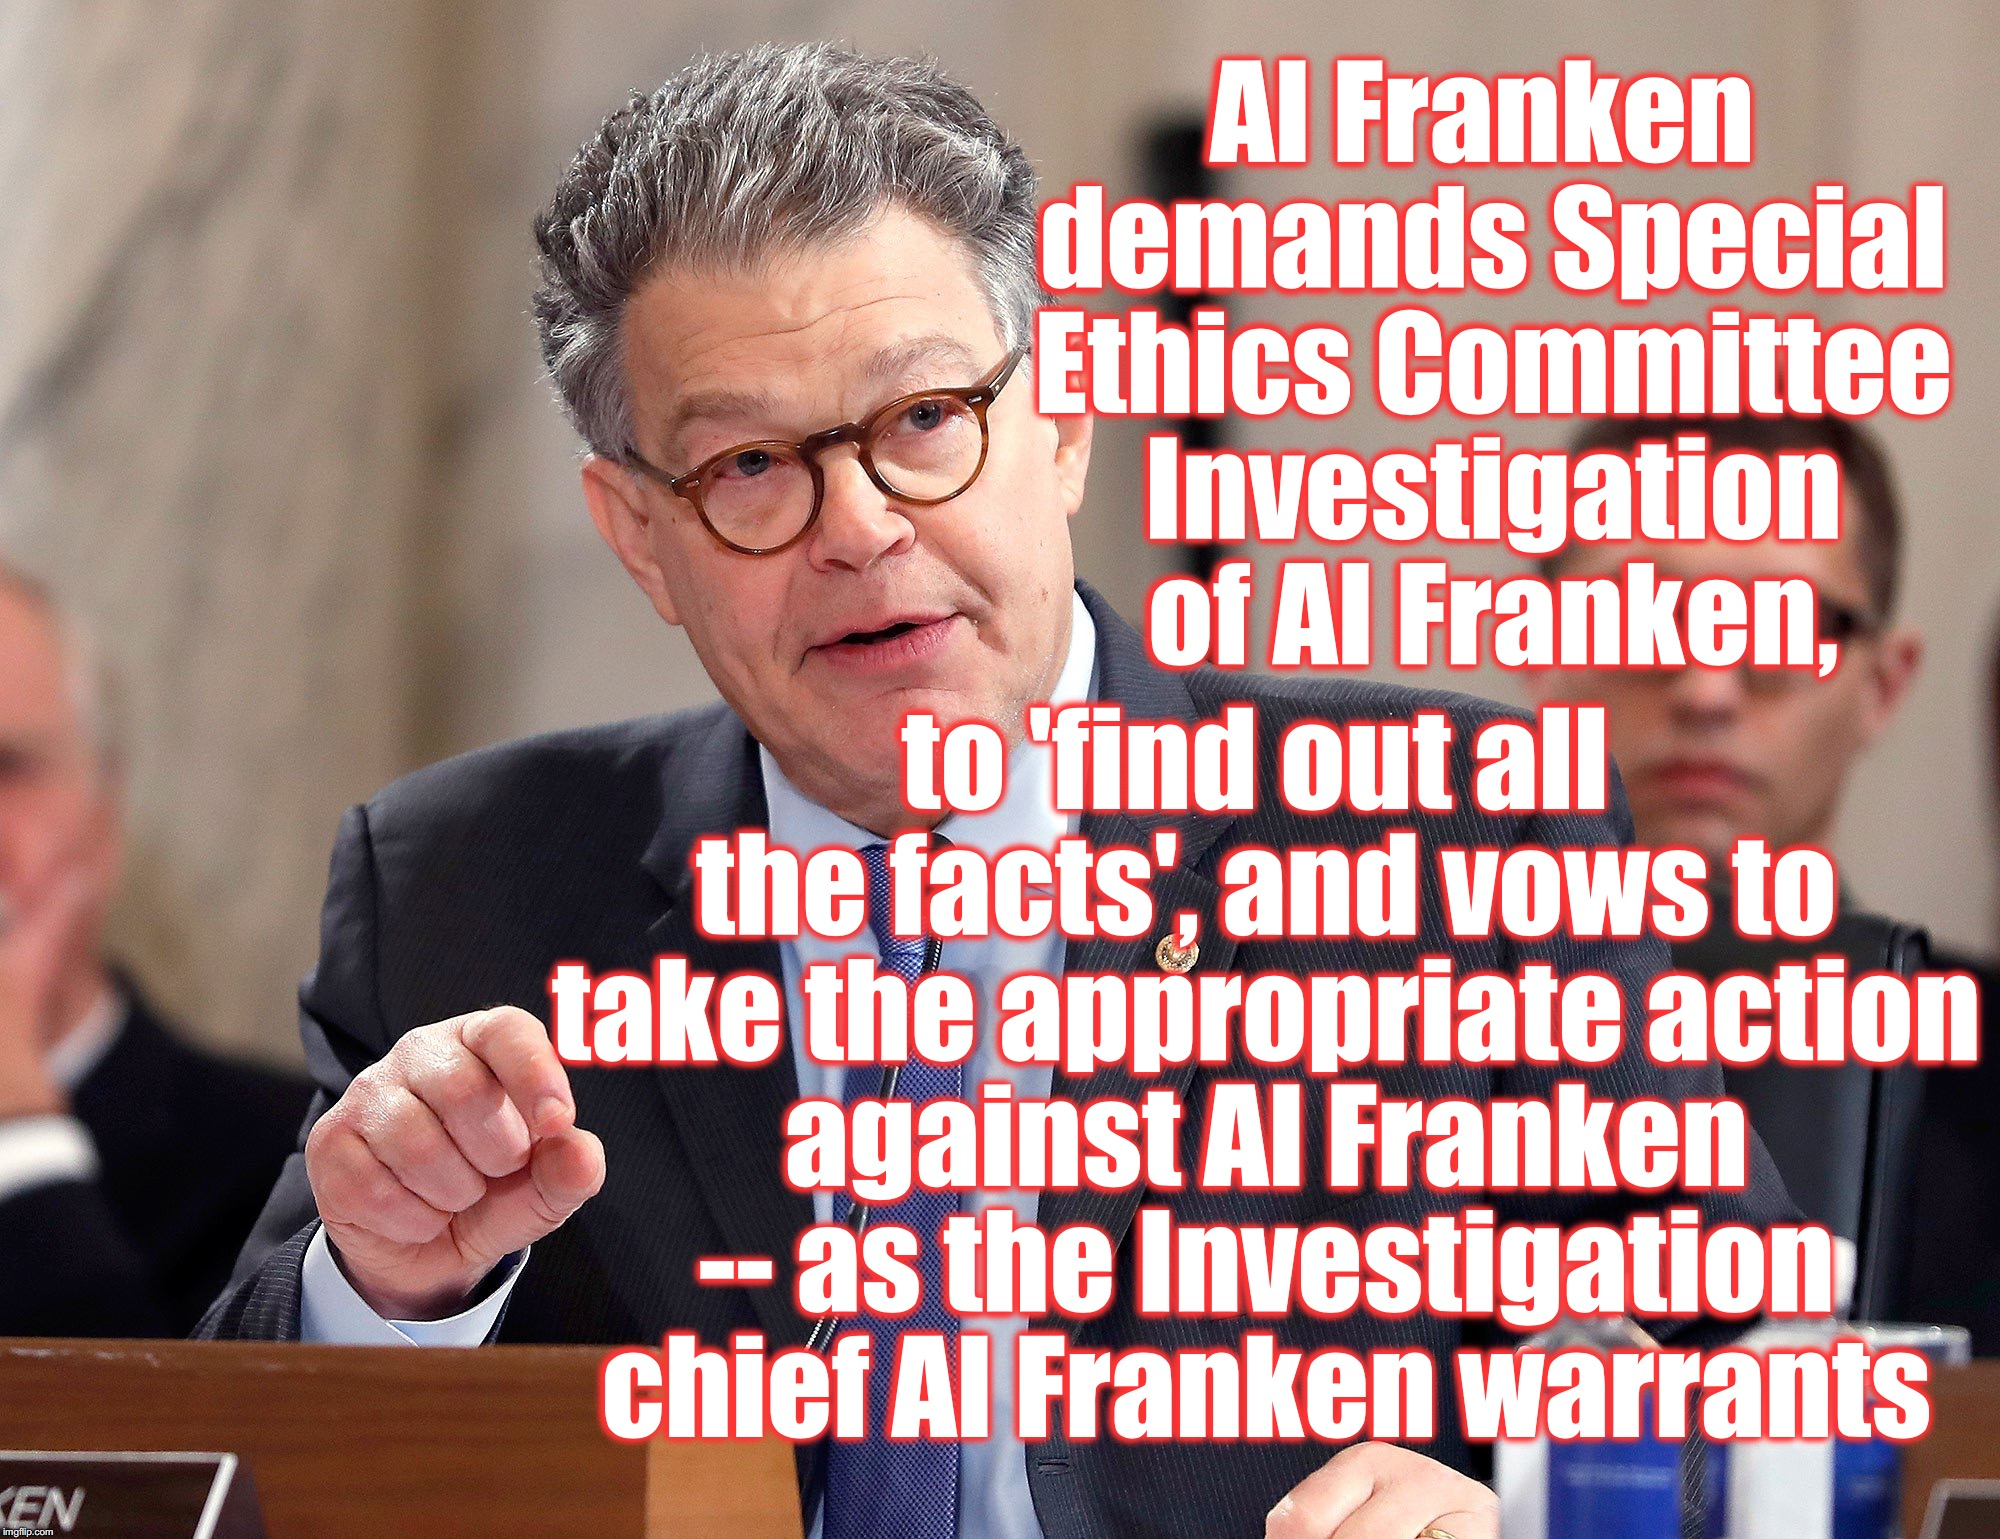 Oh, I'm sure he'll 'get to the bottom of himself'.... | Al Franken demands Special Ethics Committee Investigation of Al Franken, to 'find out all the facts', and vows to take the appropriate actio | image tagged in al franken,ethics,investigation | made w/ Imgflip meme maker